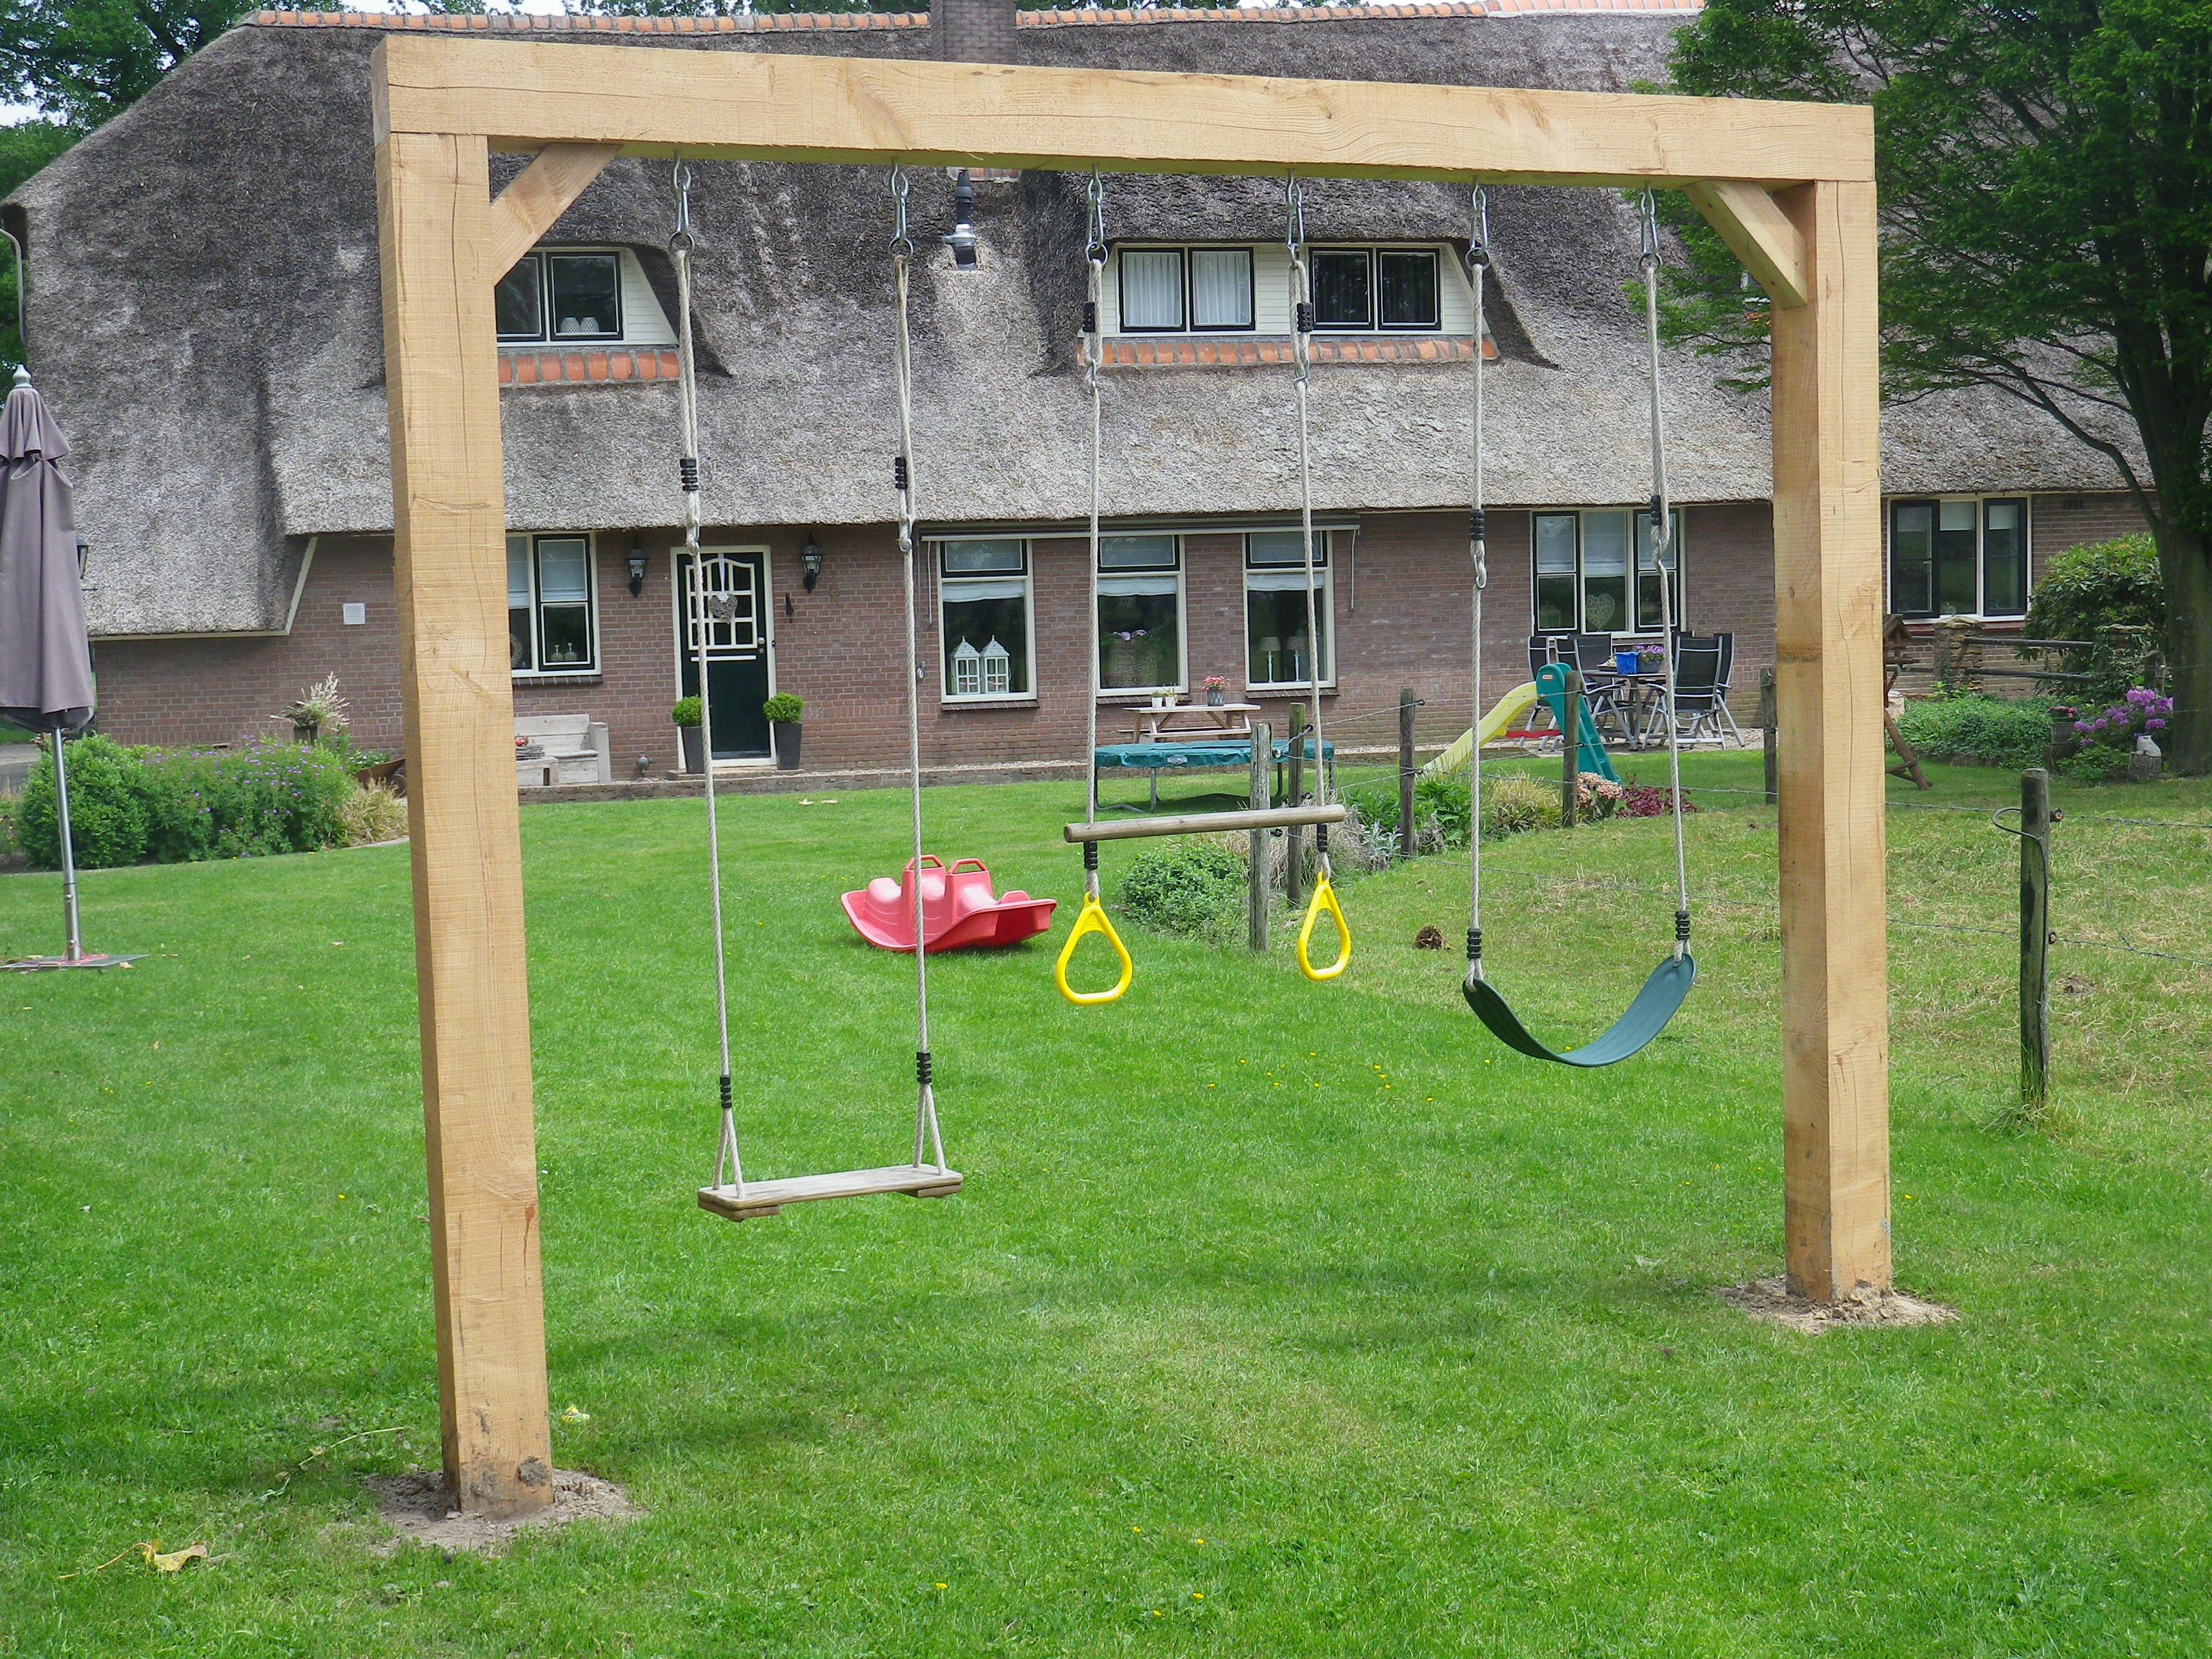 How To Build A Wooden Kids Swing Set - Hgtv,